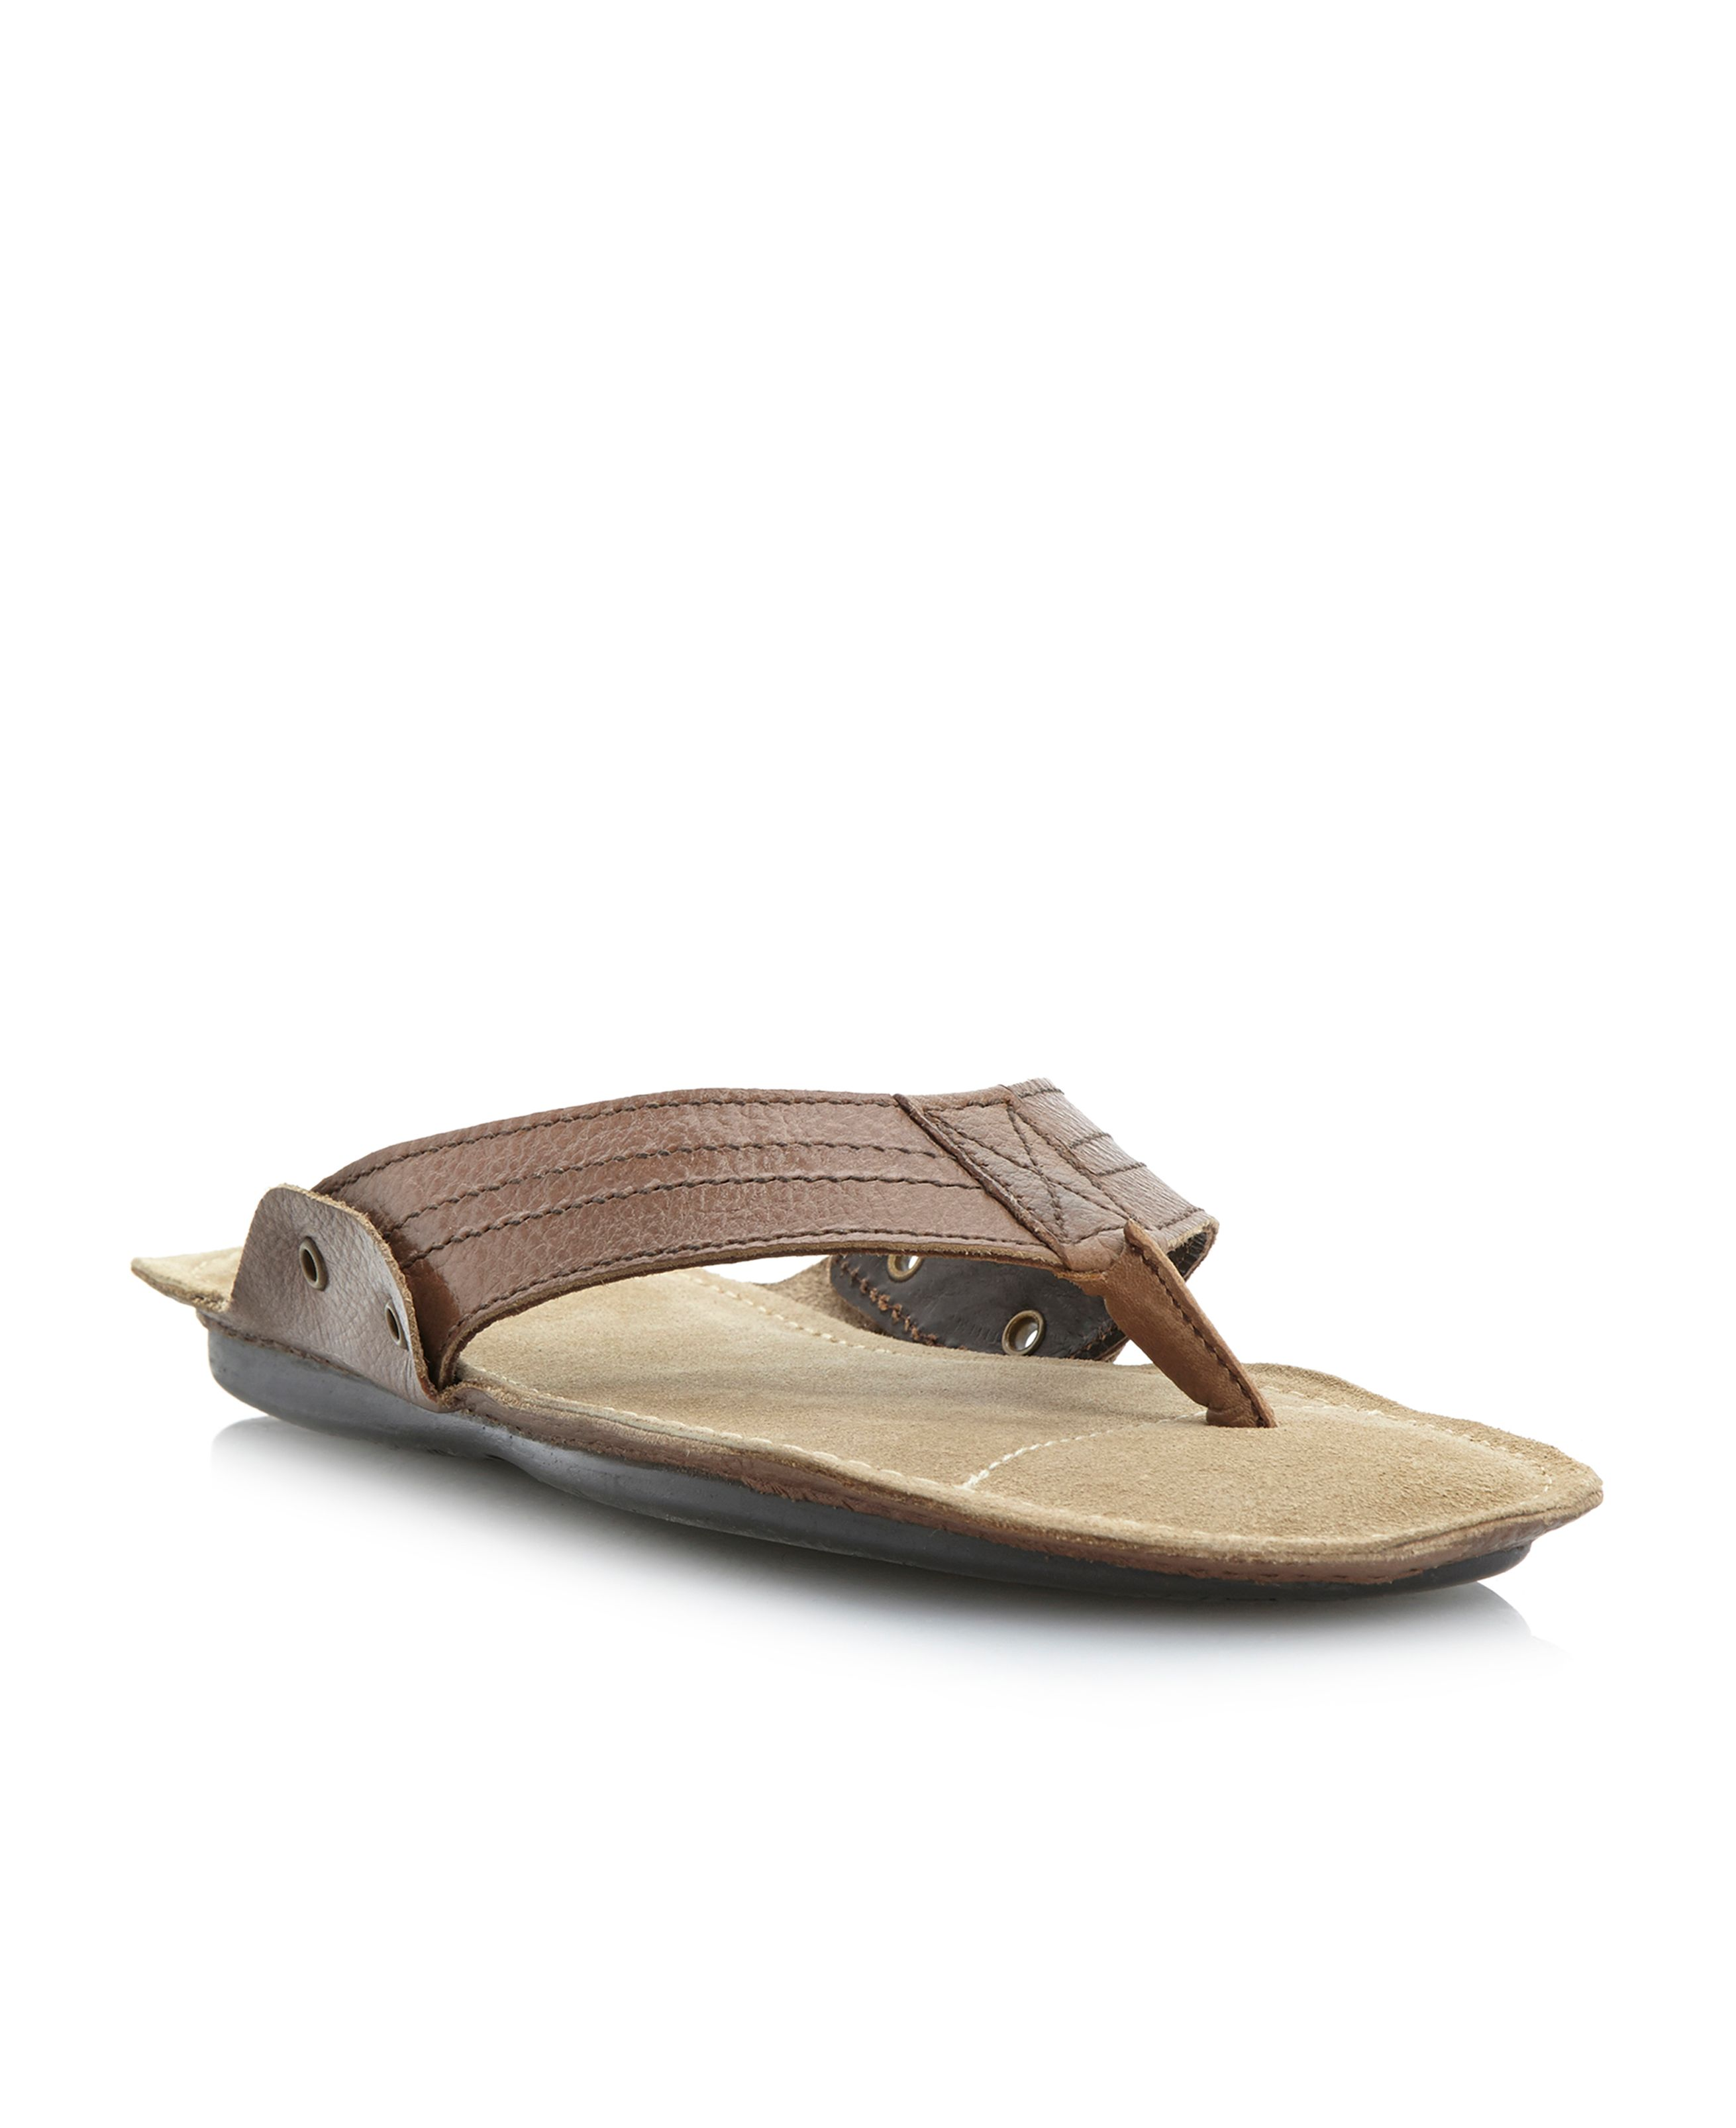 Israel flexi padded toe-p sandals